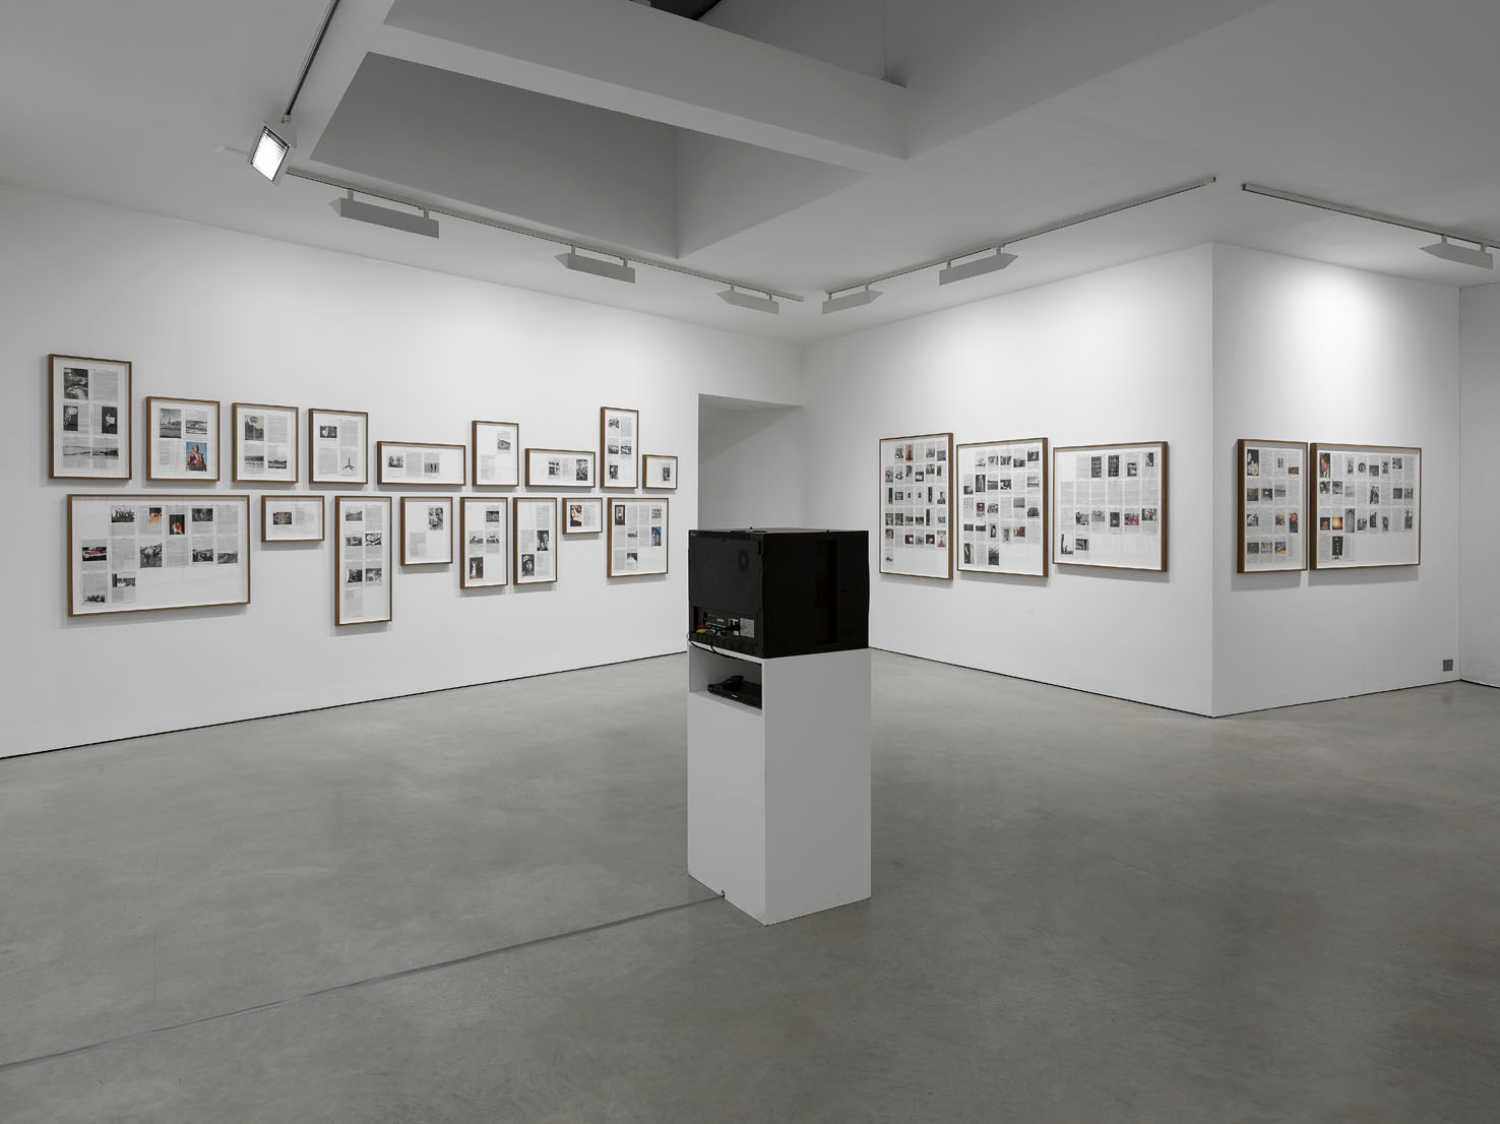 Cross Section of a Revolution, Lisson Gallery, London, Installation View, 2015, Image © Lisson Gallery, London